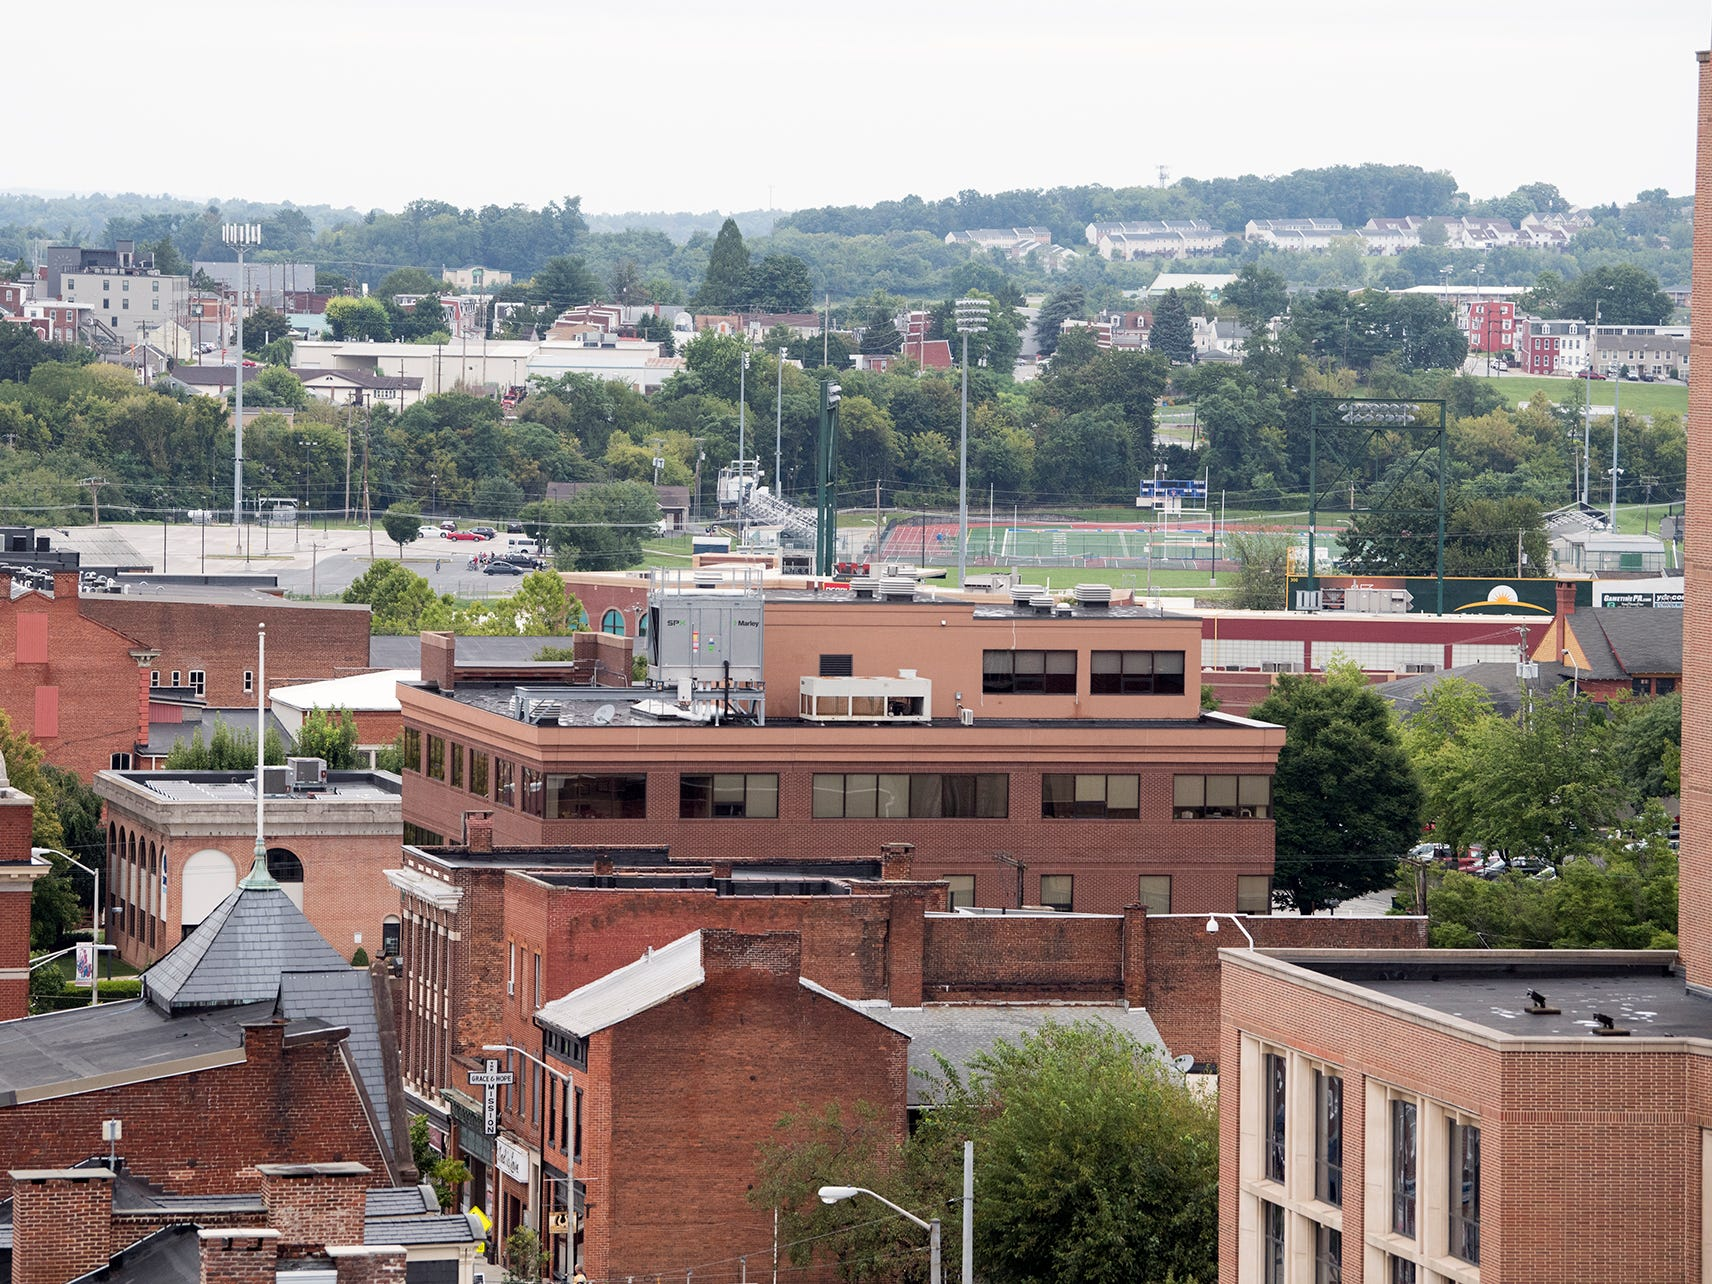 Looking north across North George Street from the Rupp-Schmidt Building at 2 West Market Street in York. The William Penn football field is visible at top right.